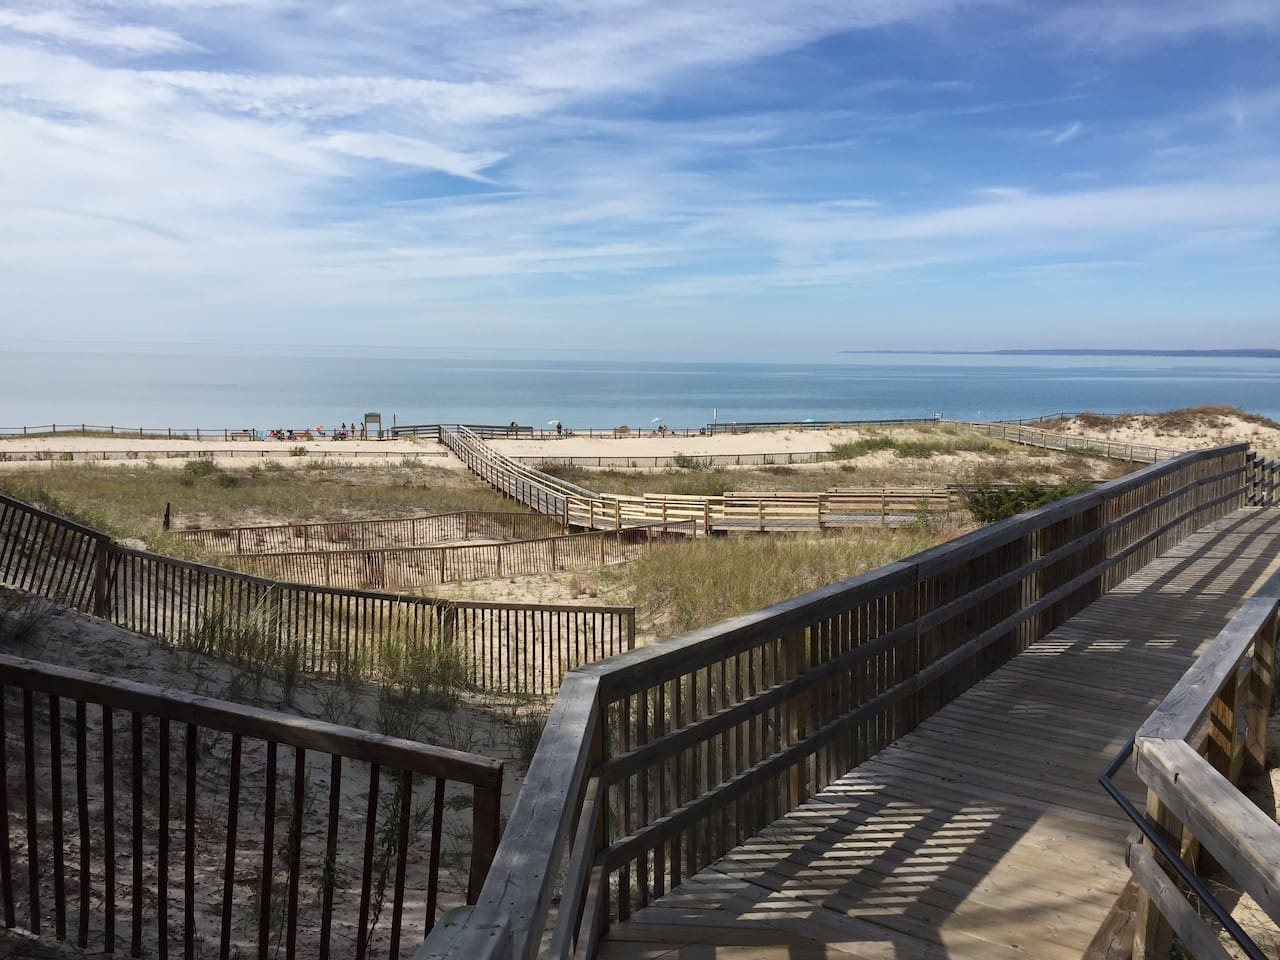 Beautiful powder beach, crystal clear waters, sand dunes and boardwalk are a short 8 minute walk from our home.